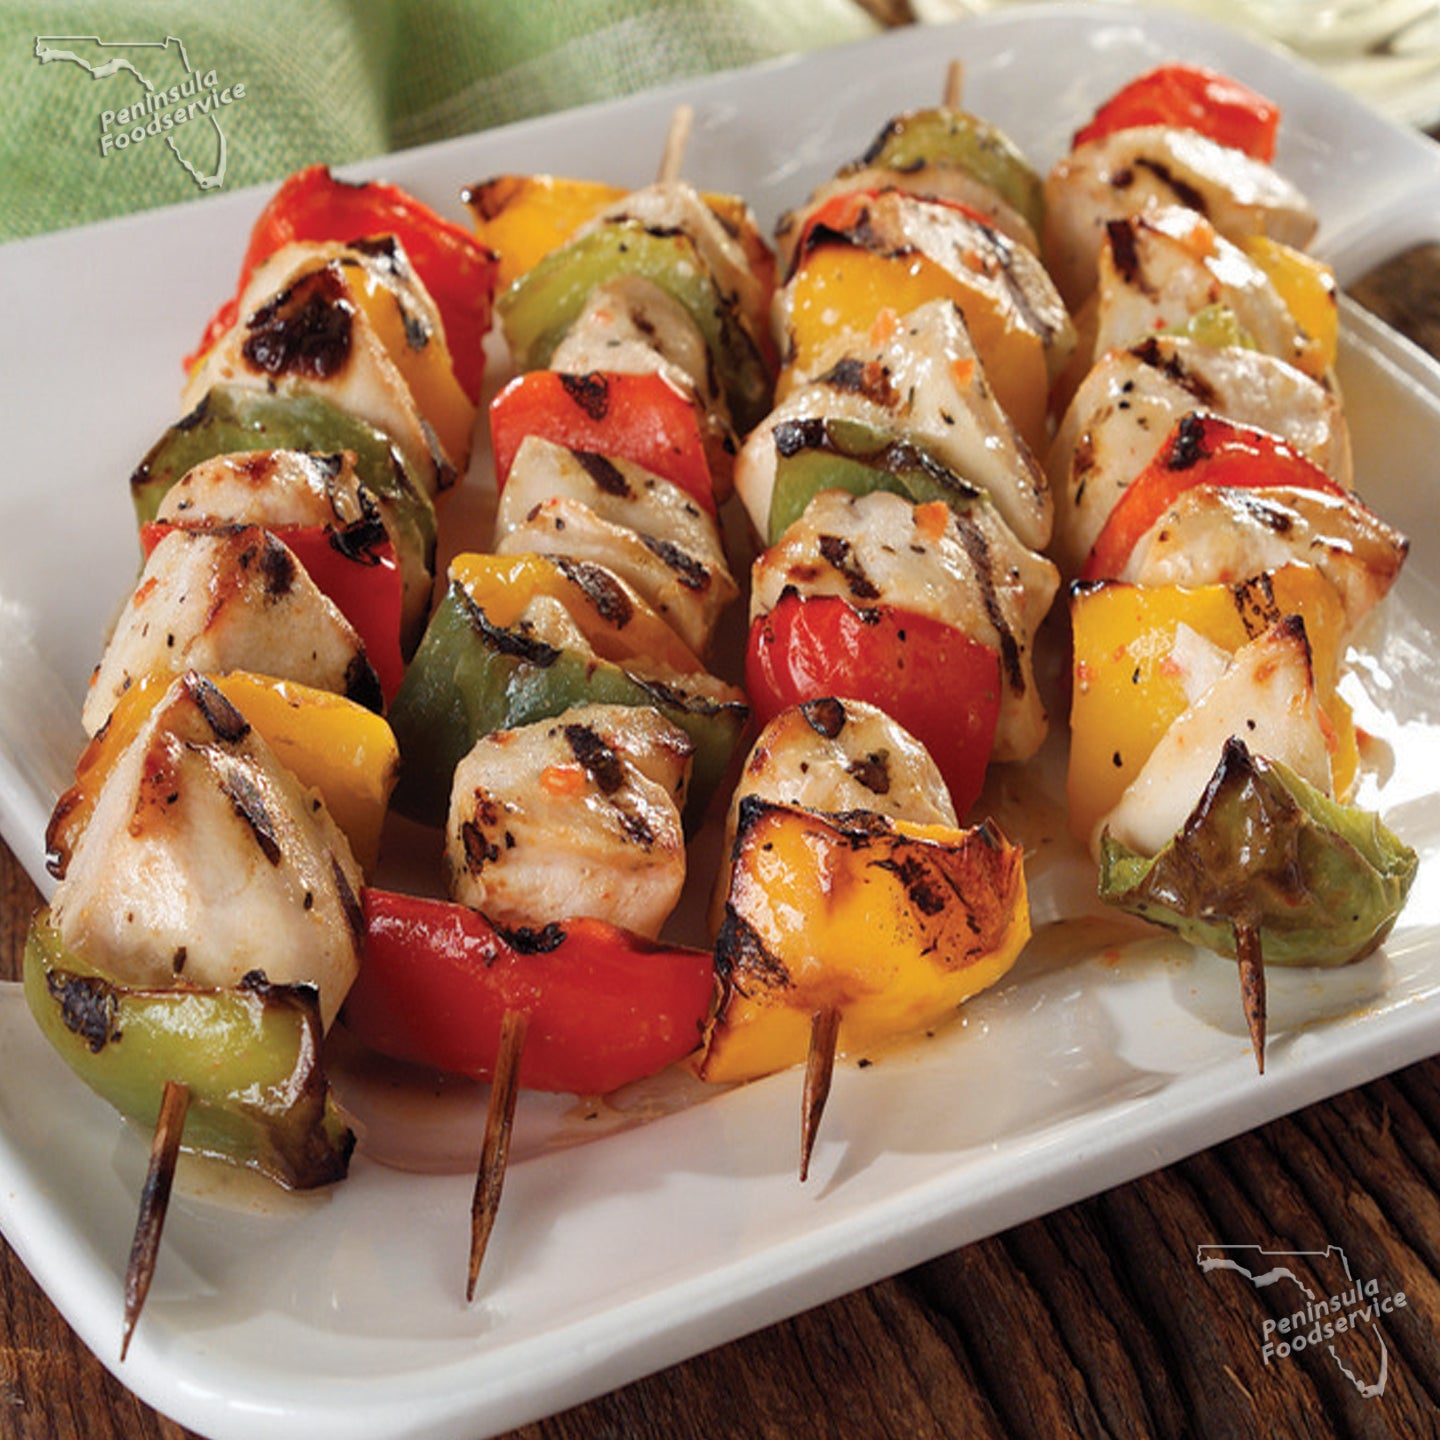 Chicken Thigh Kabobs Entree Size [$2.50/ea]